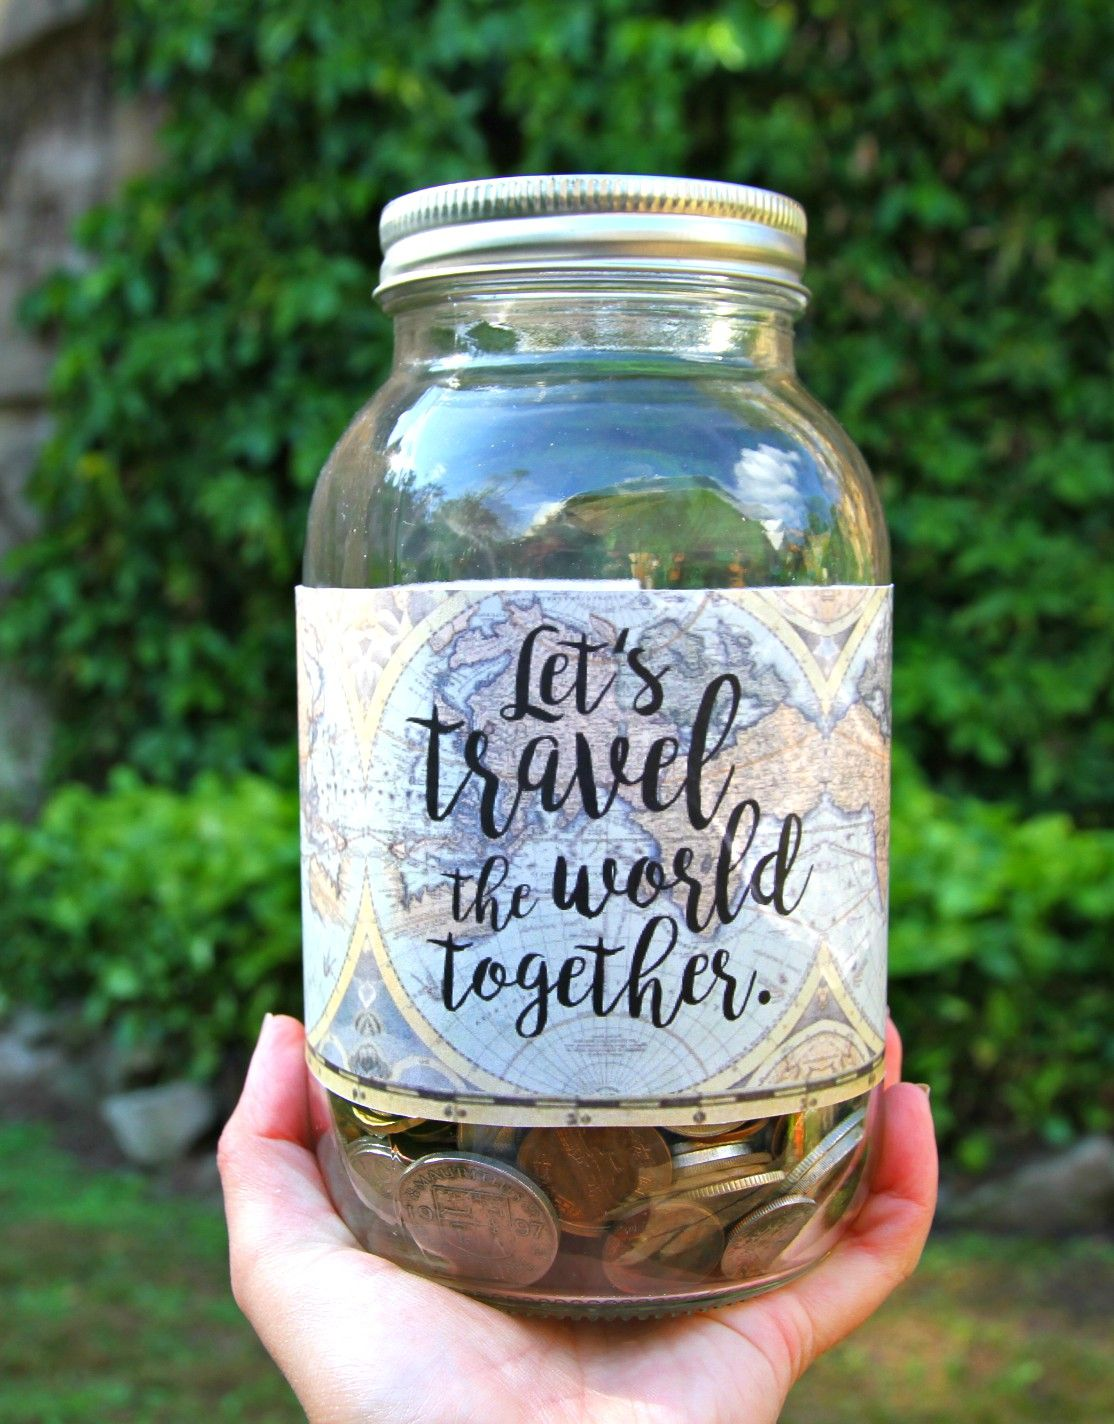 Grab Someone And Just Go Create Your Own Diy Jar With This Let S Travel The World Together Digital Label Etsy A Diy Gifts In A Jar Jar Diy Couple Gifts